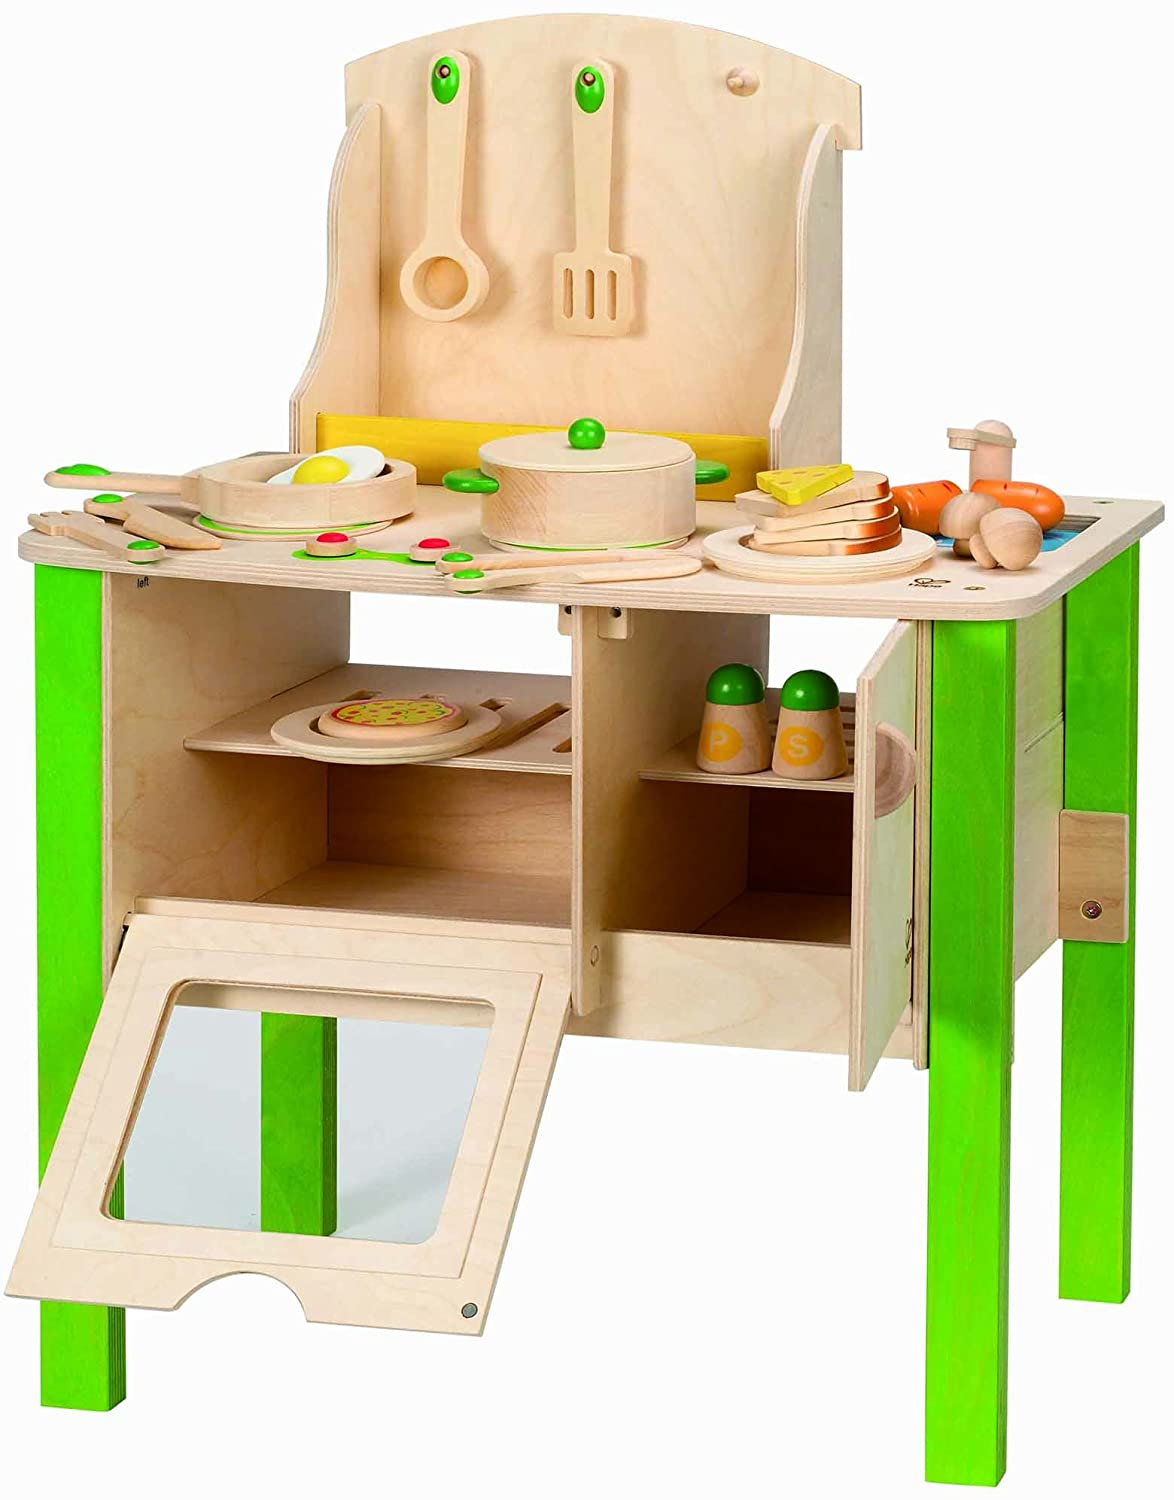 Creative Kitchen Amazoncom Hape My Creative Cookery Club Kids Wooden Play